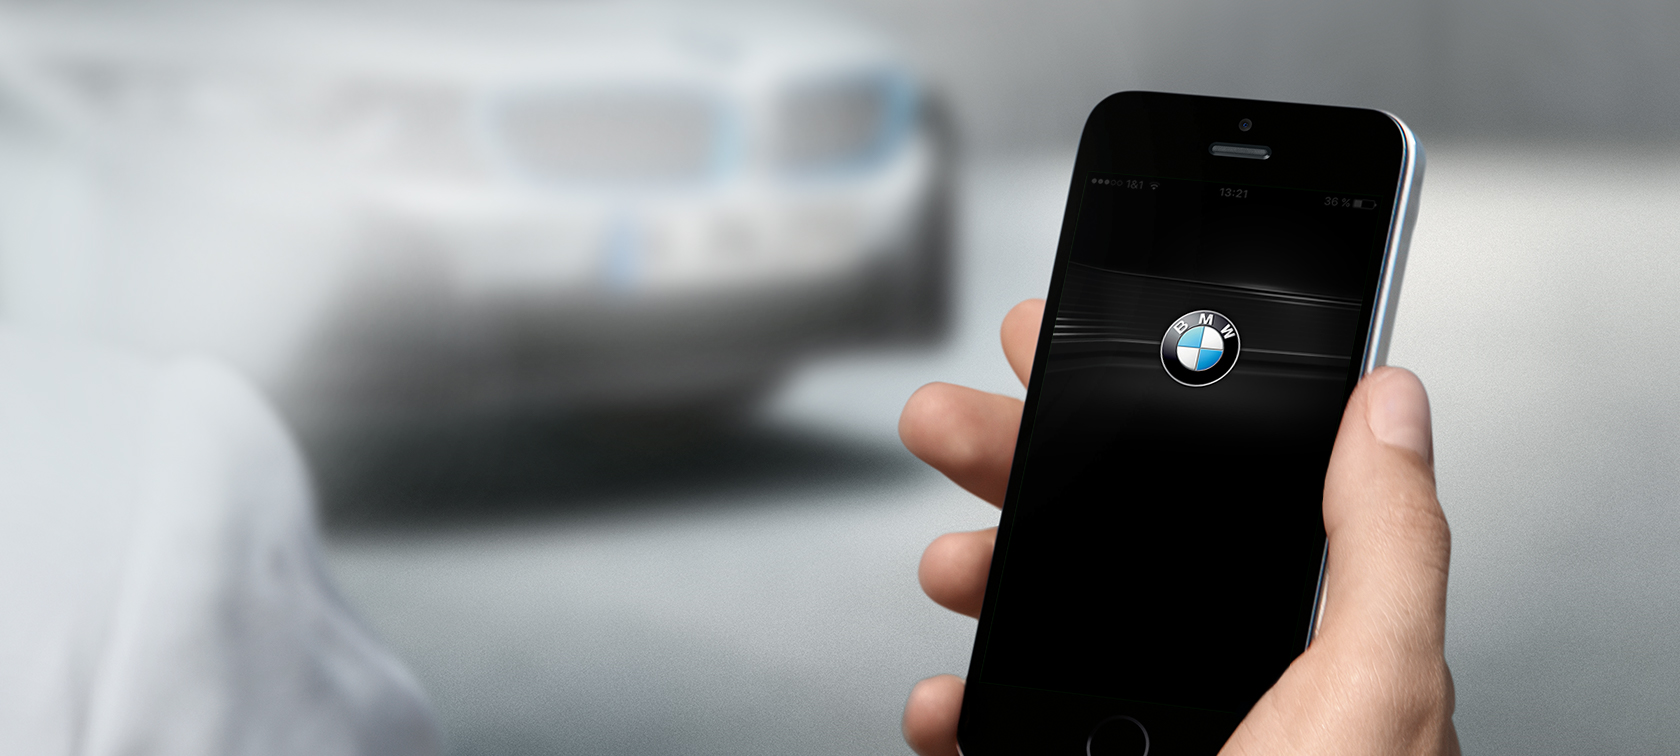 BMW compatible Apps: Overview